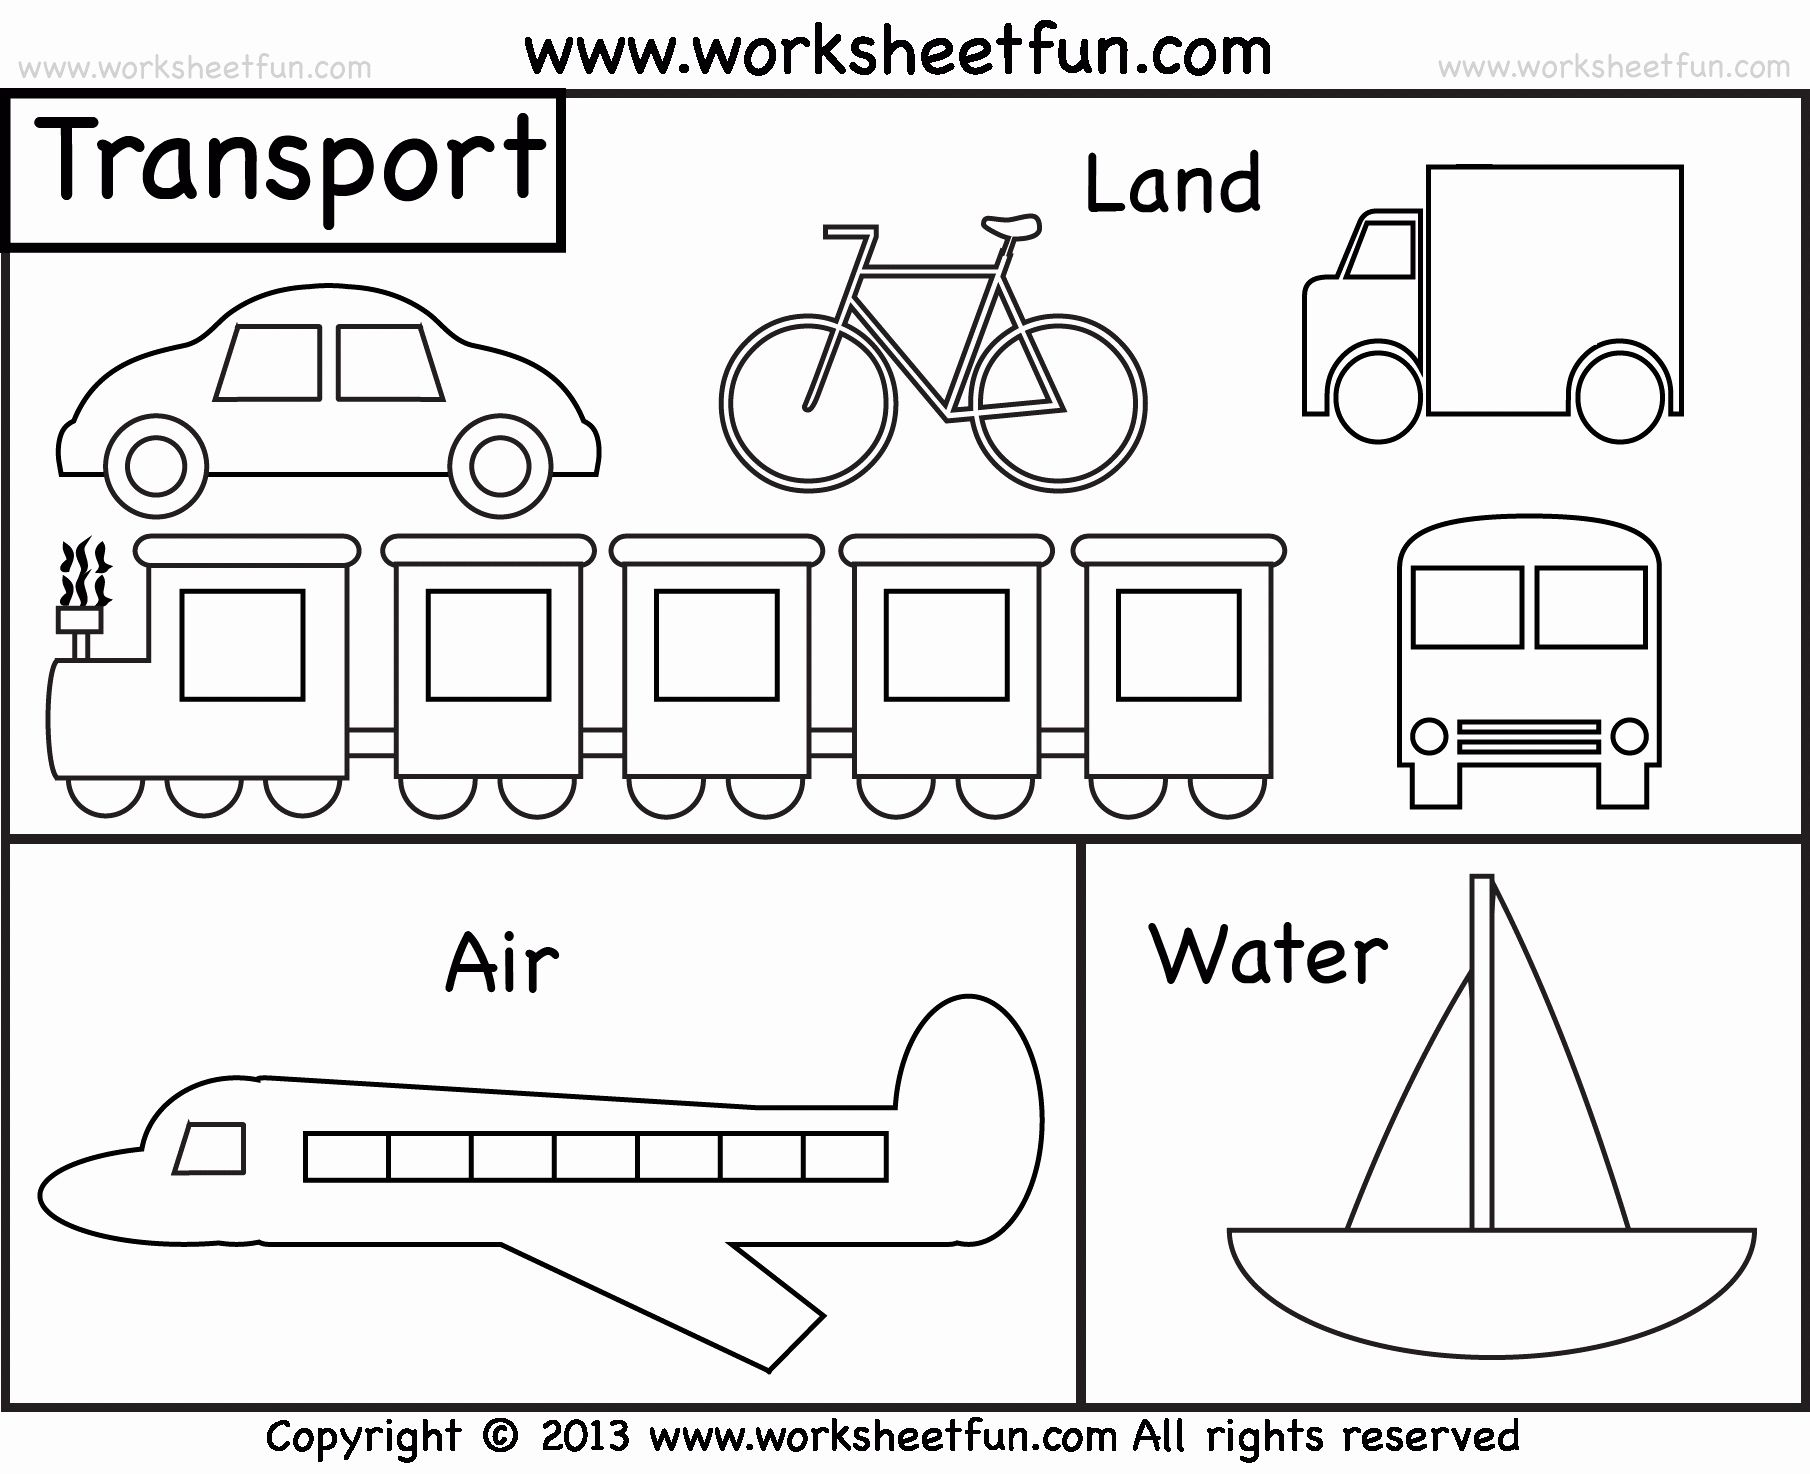 Transport Coloring Worksheet Printable In With